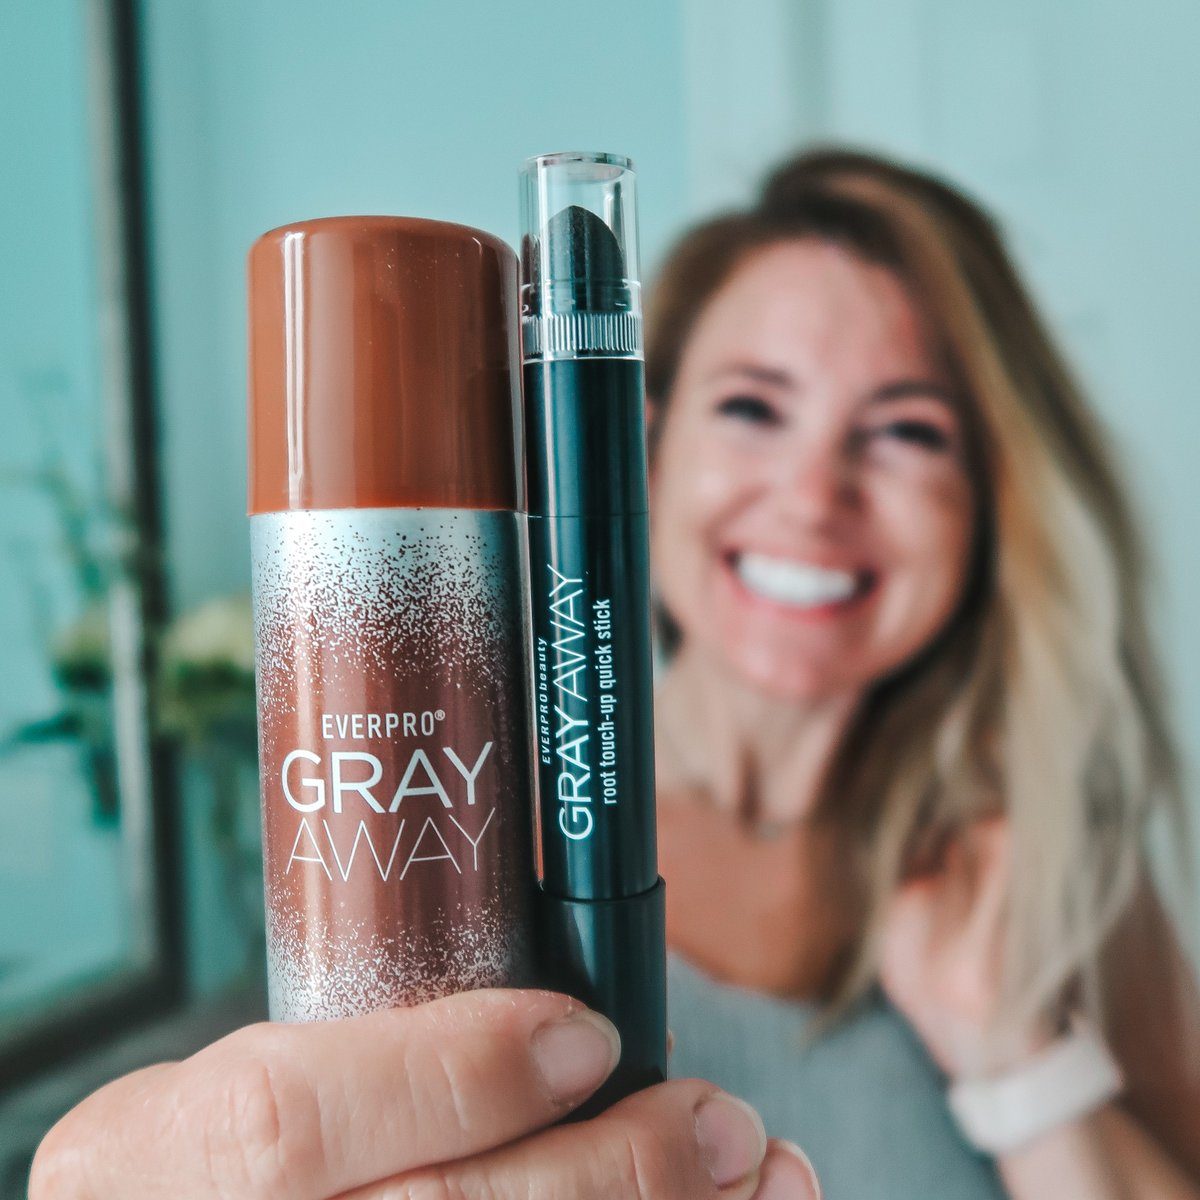 Who else has been feeling the struggle on keeping up with their hair and ALL THOSE ROOTS? #GrayAwayPartner Well, you can easily keep up with your hair maintenance during the chaos. Loving @GrayAwayEverpro products for keeping my roots in check! #GrayAway thesproutingminds.com/easy-maintenan…